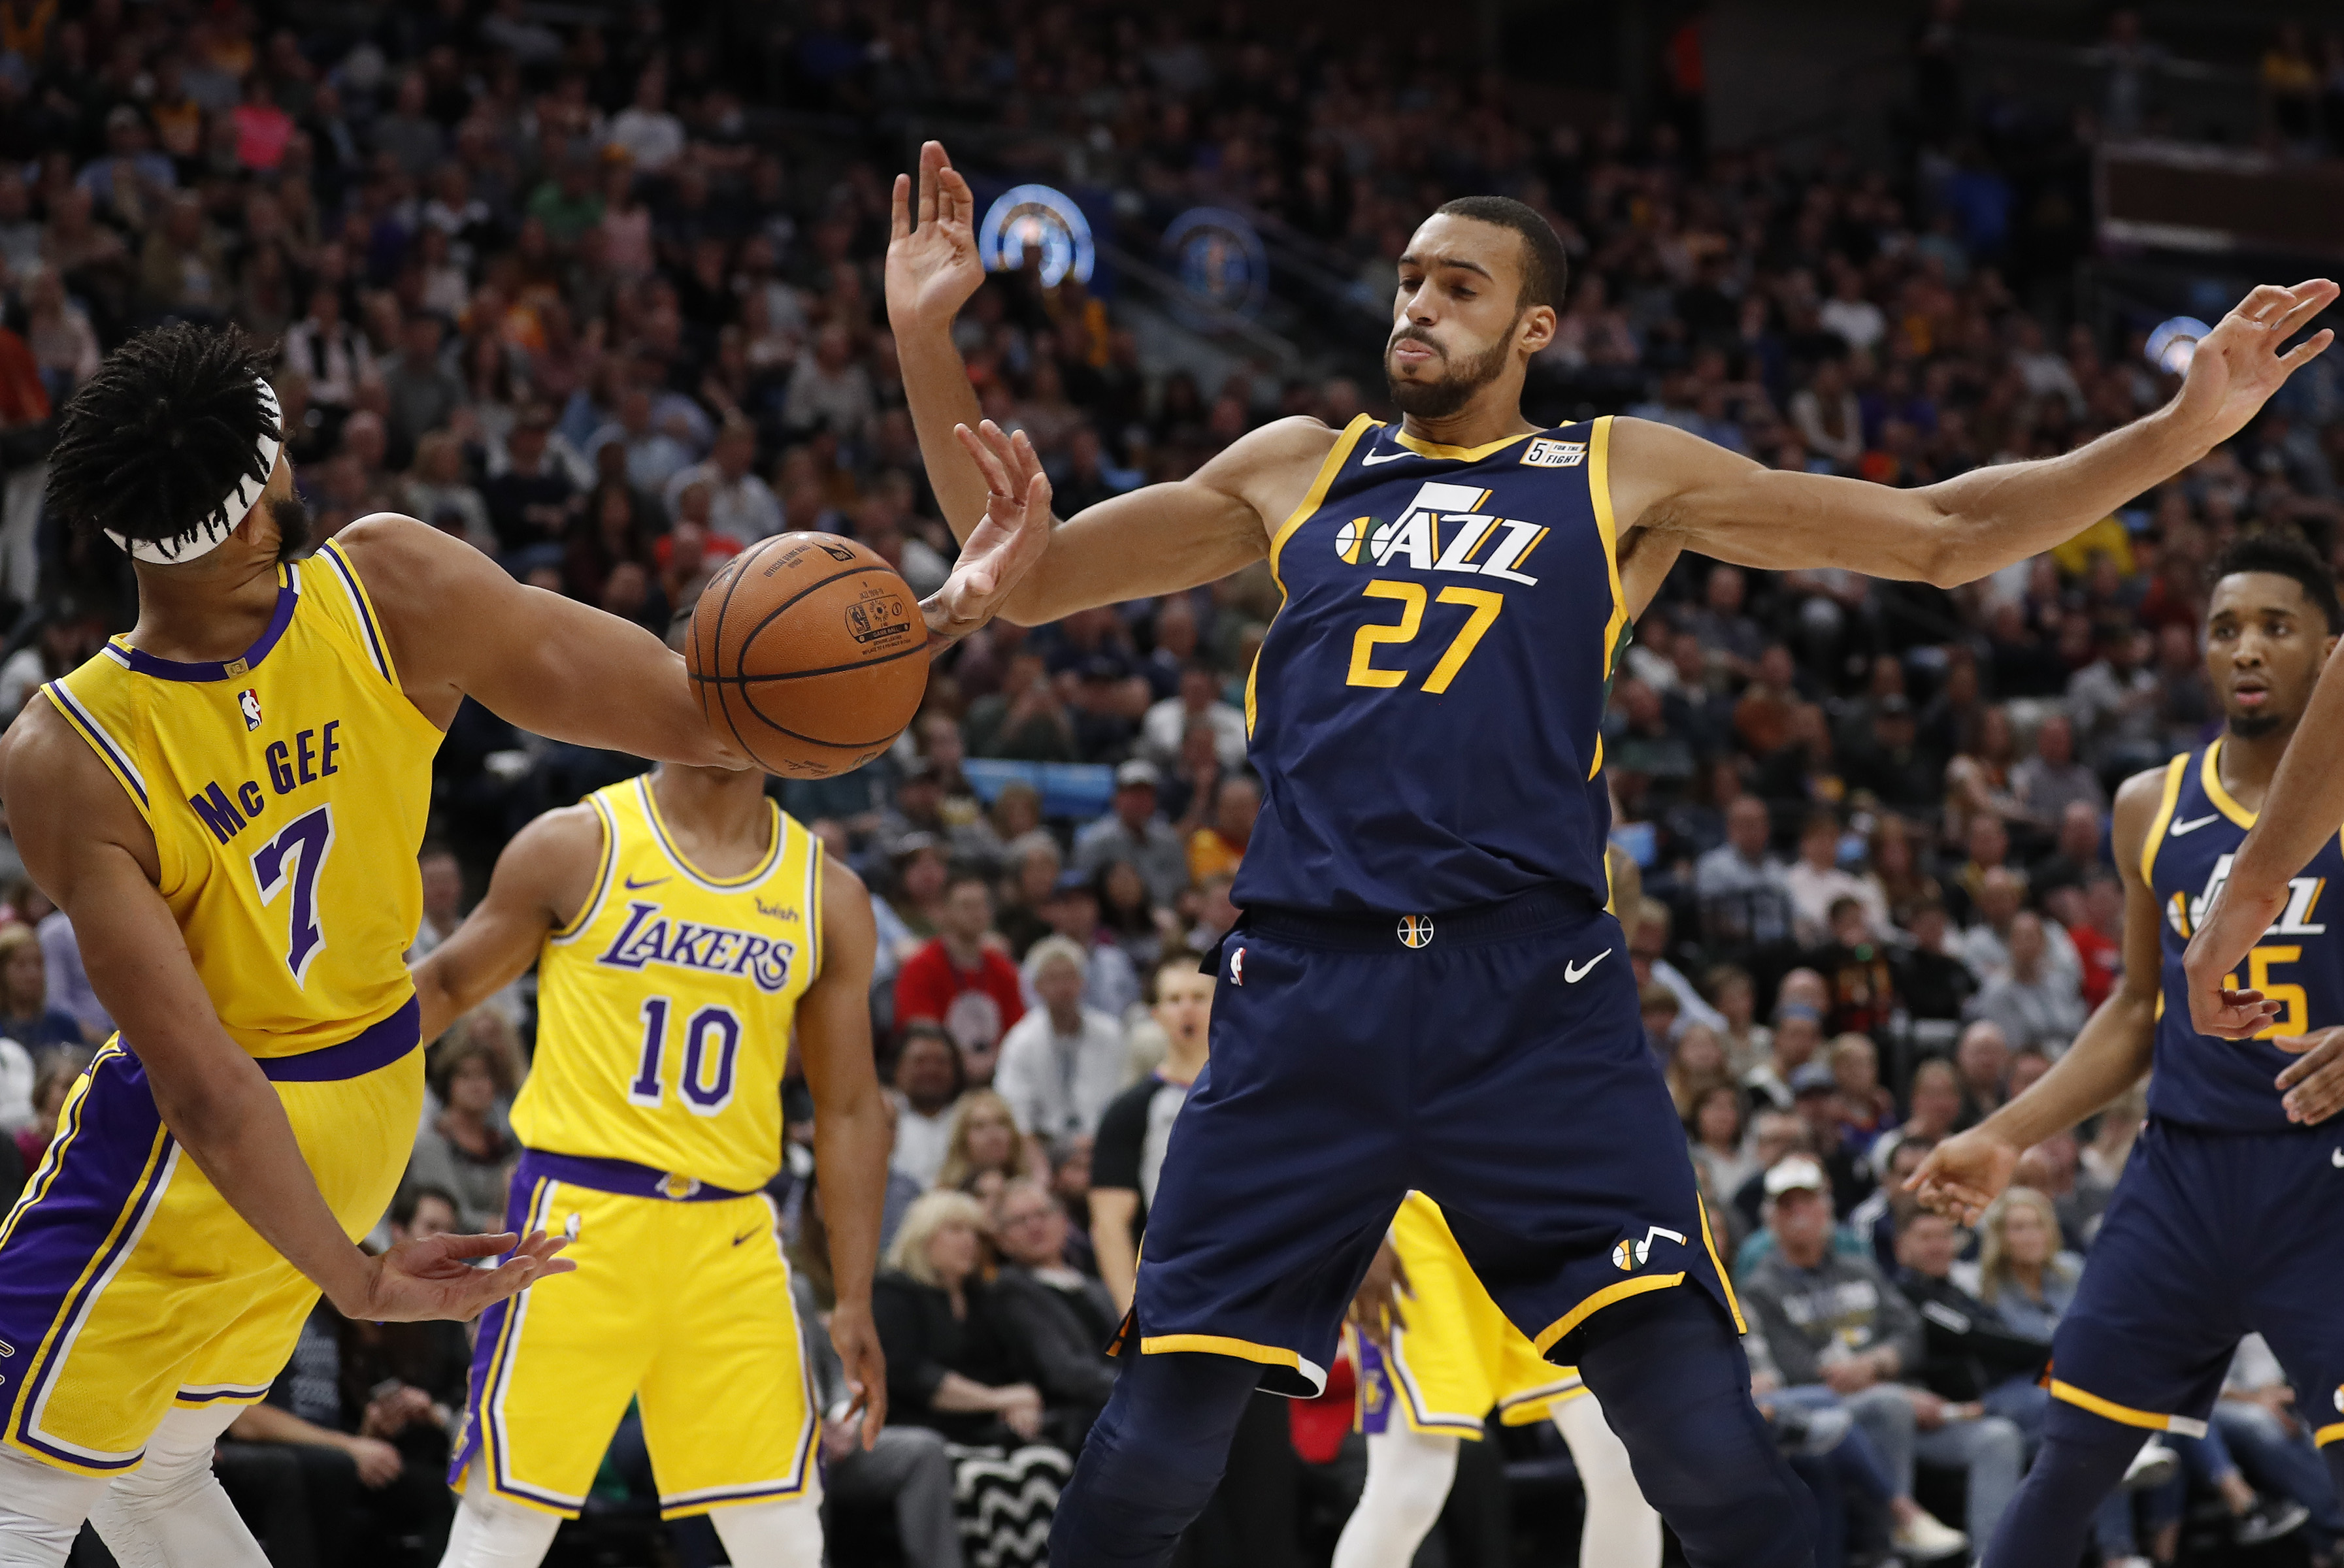 Jazz Will Blow Past G-League Lakers On Sunday